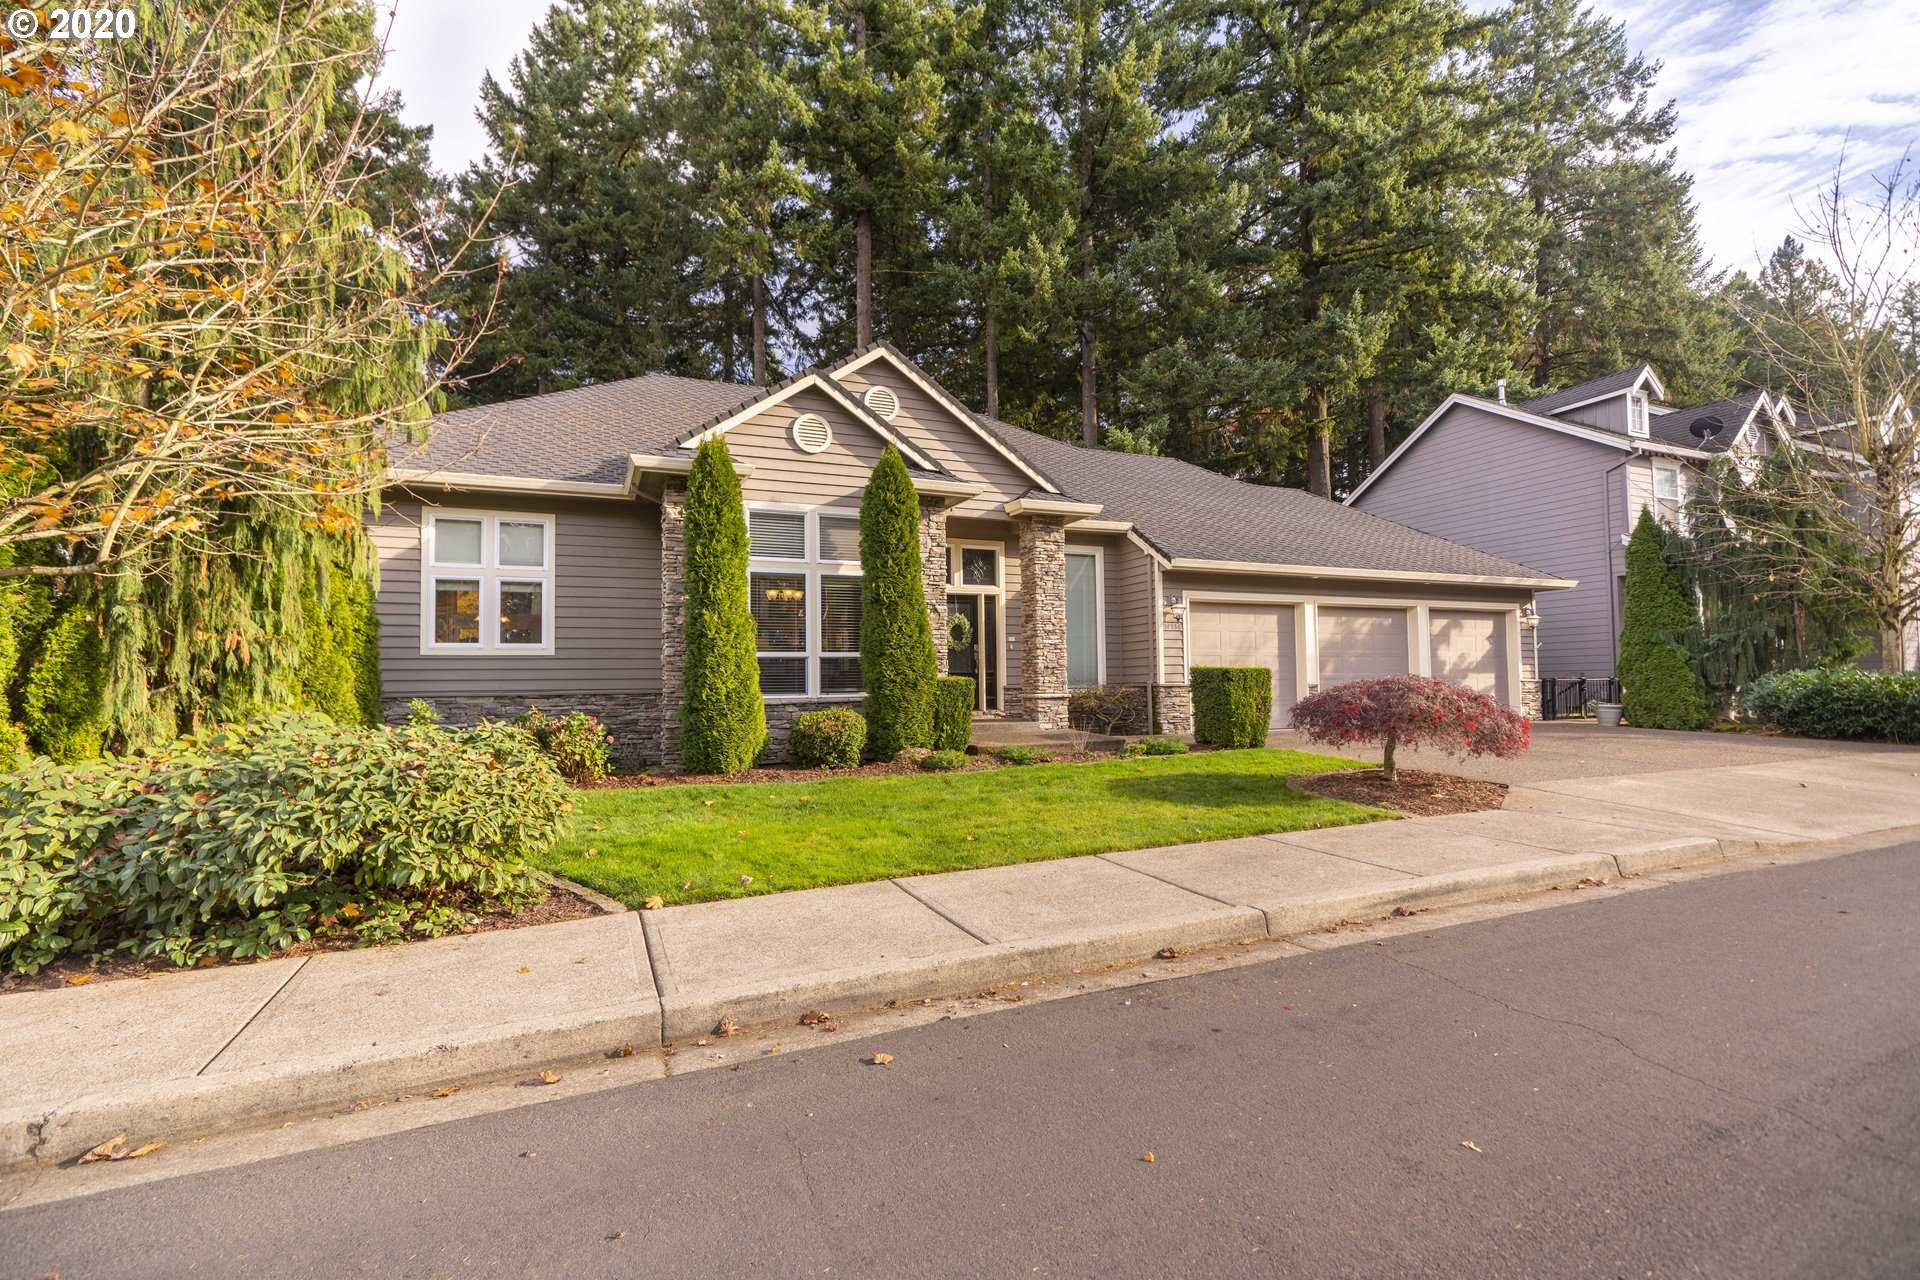 $725,000 - 5Br/4Ba -  for Sale in Bull Mountain, Tigard